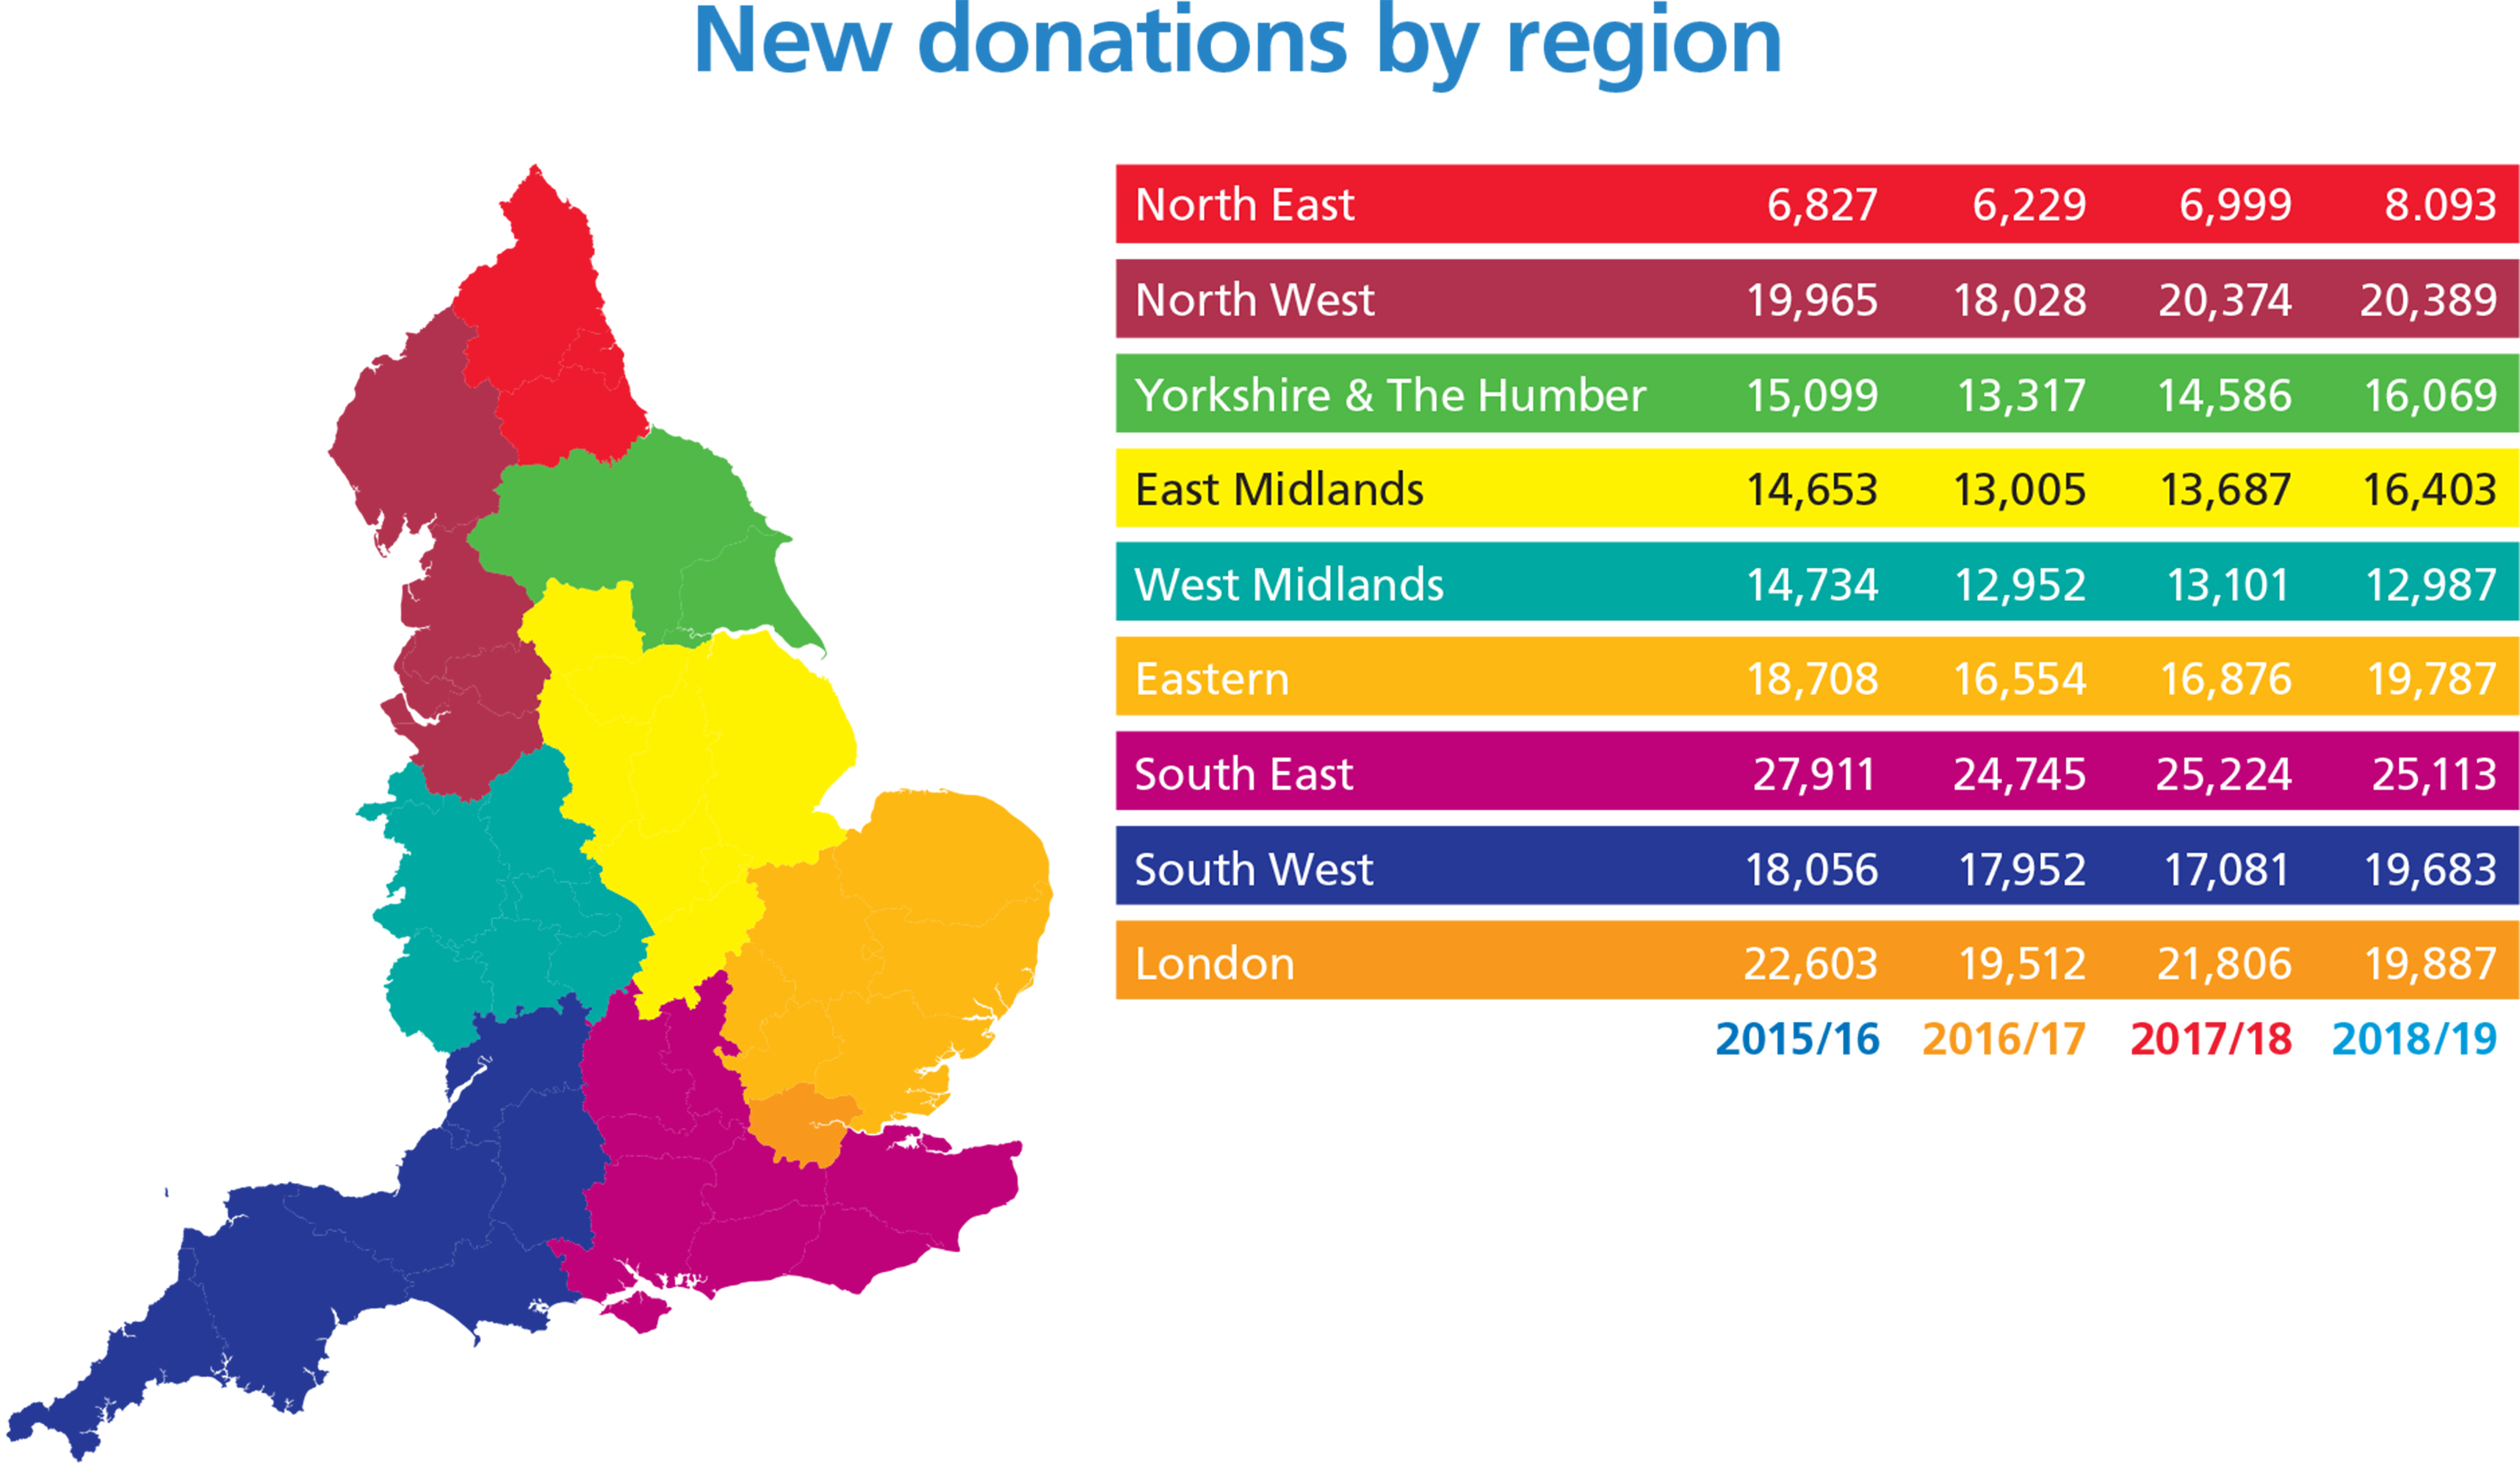 Map showing new donations by region